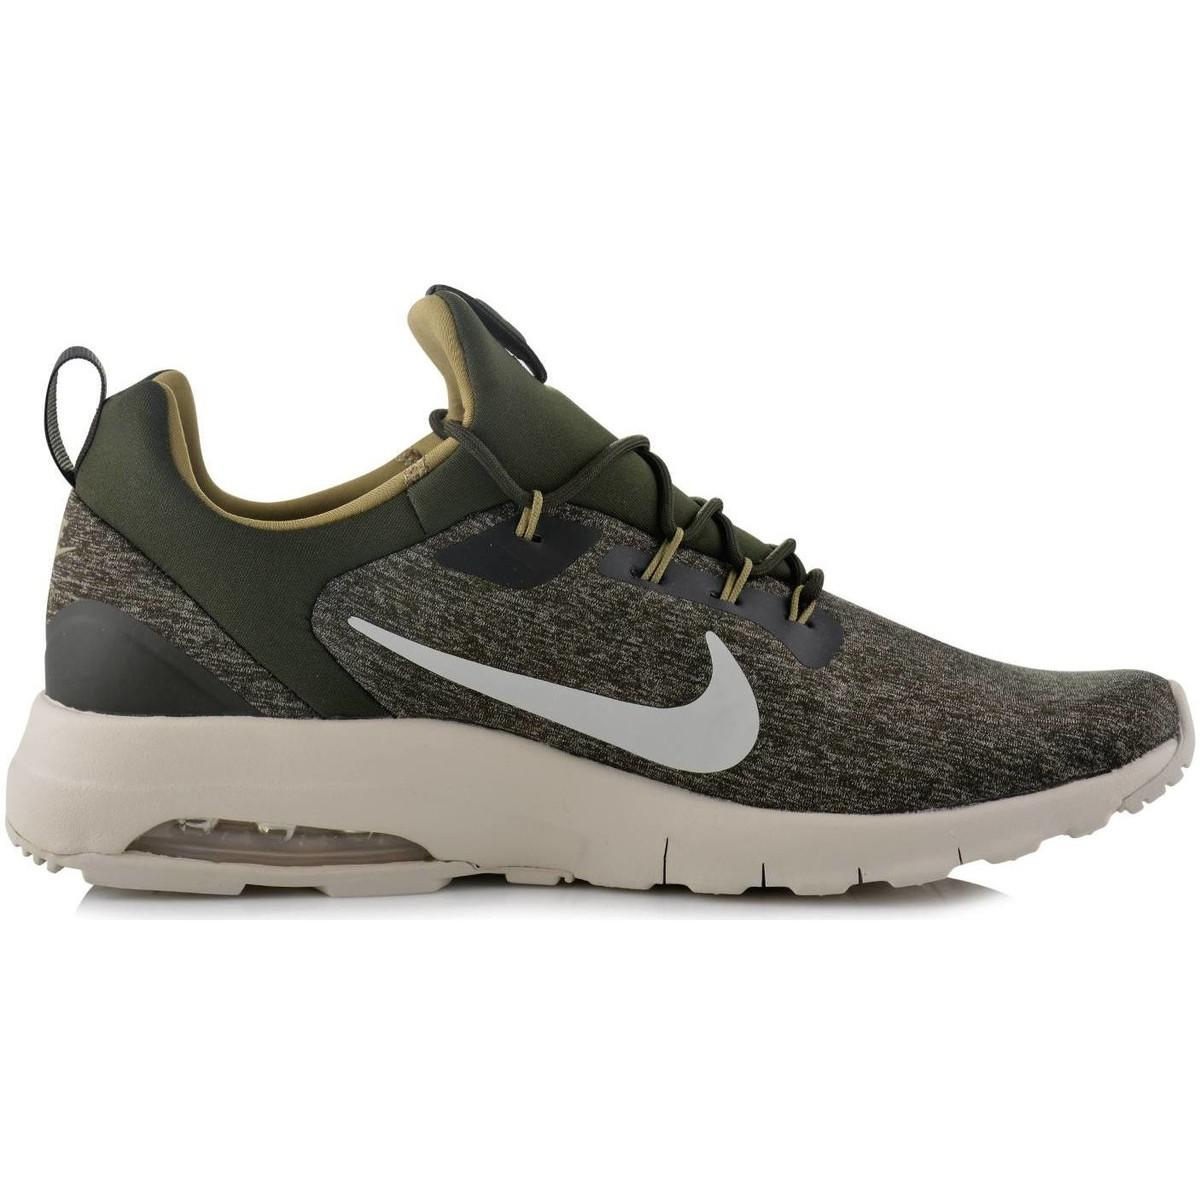 the latest 0b6f8 69900 Nike - Men s Air Max Motion Racer Shoe 916771 300 Men s Shoes (trainers)  In. View fullscreen